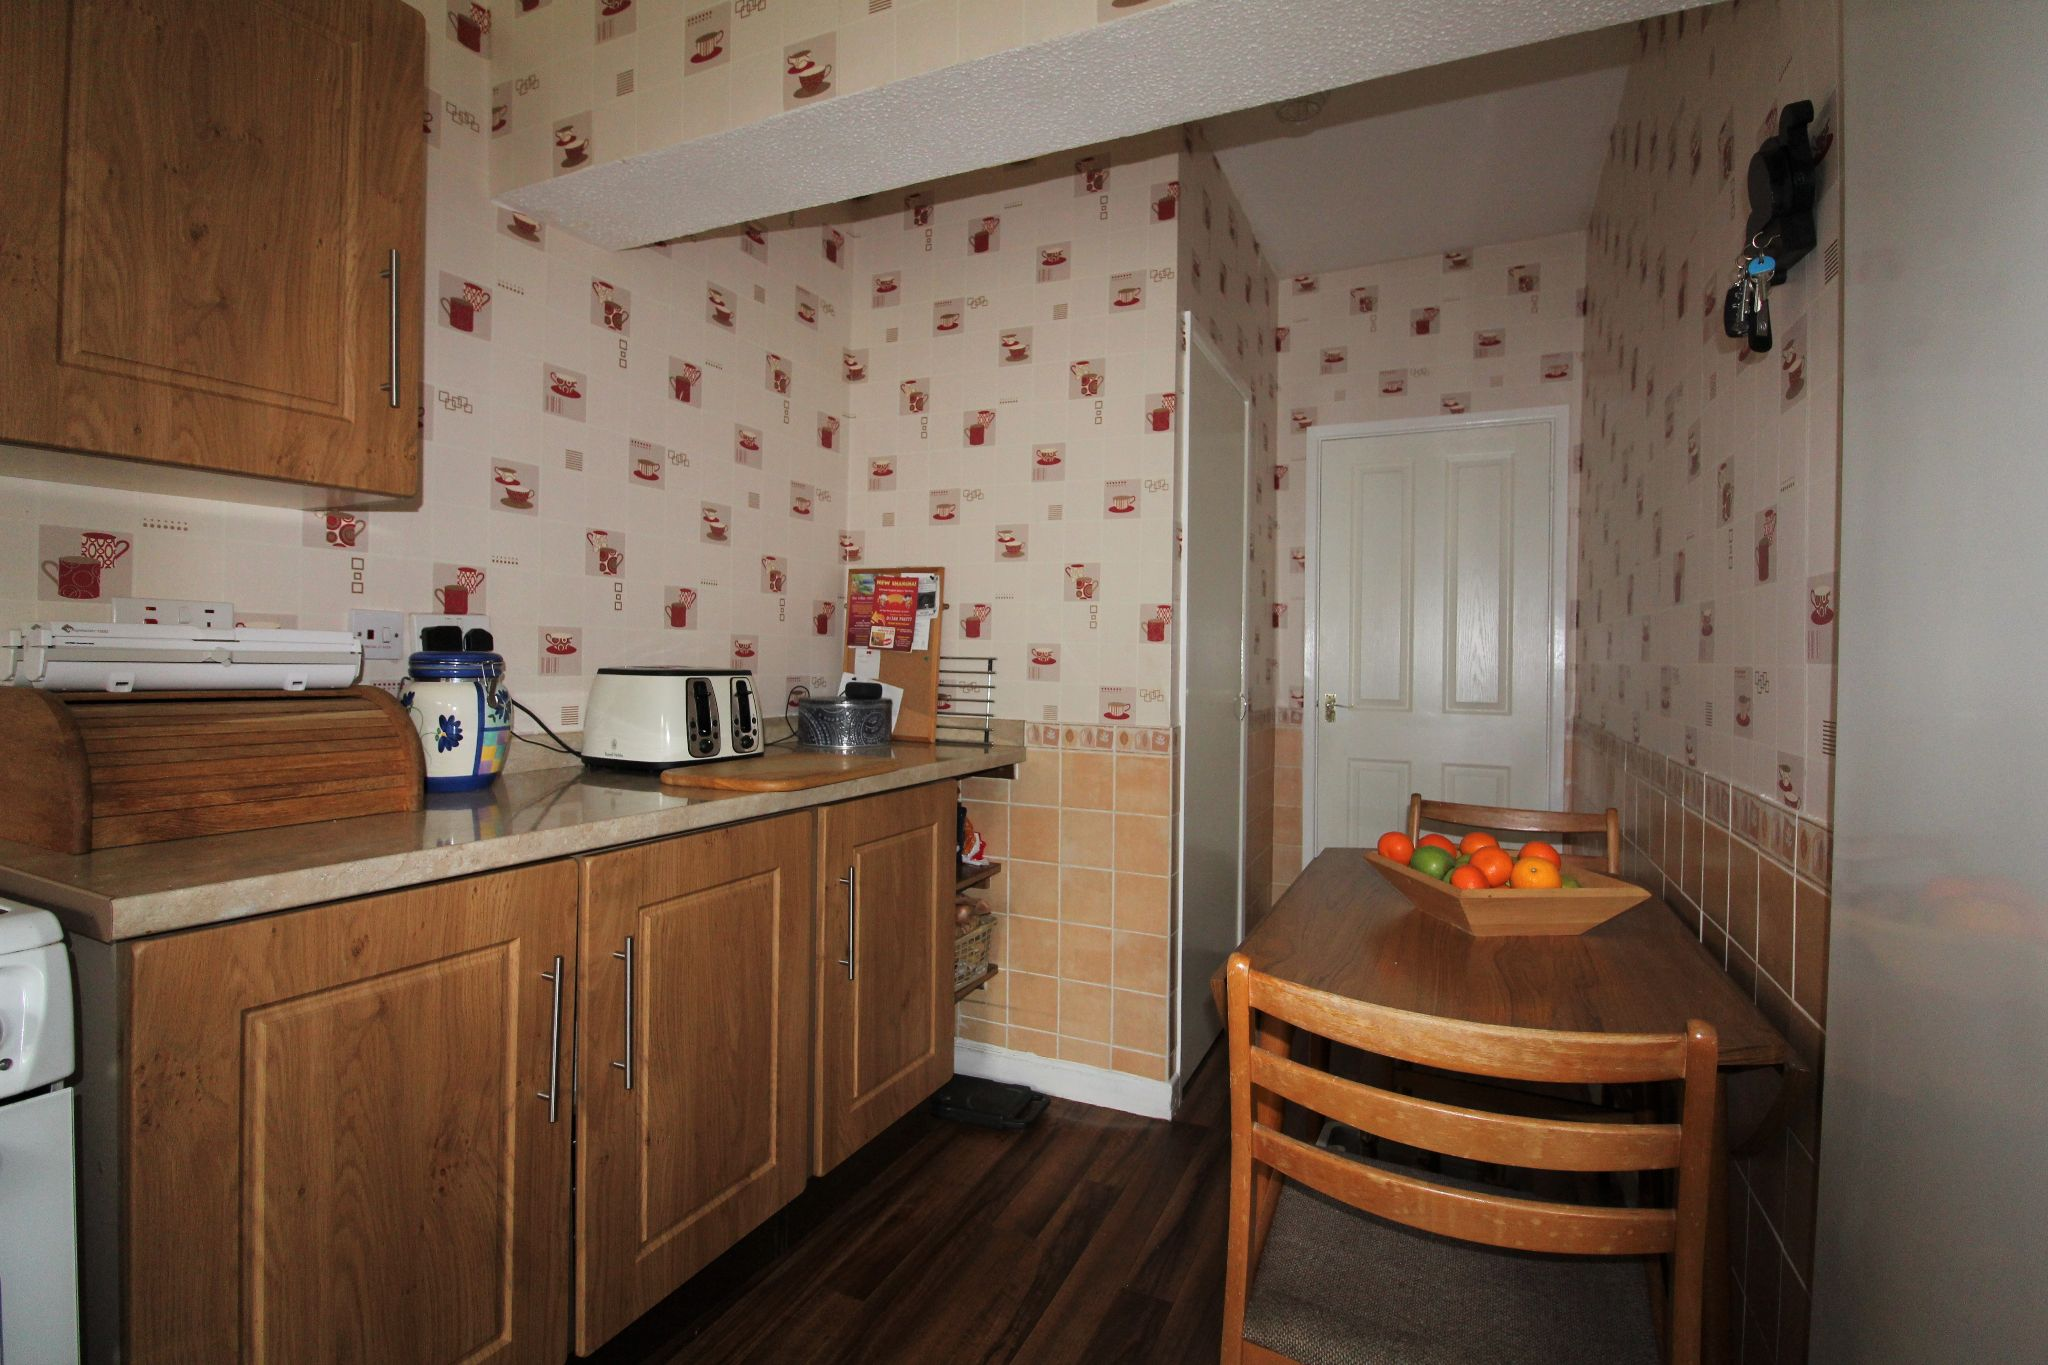 3 bedroom mid terraced house For Sale in Willington And Hunwick - Breakfast area in Kitchen.